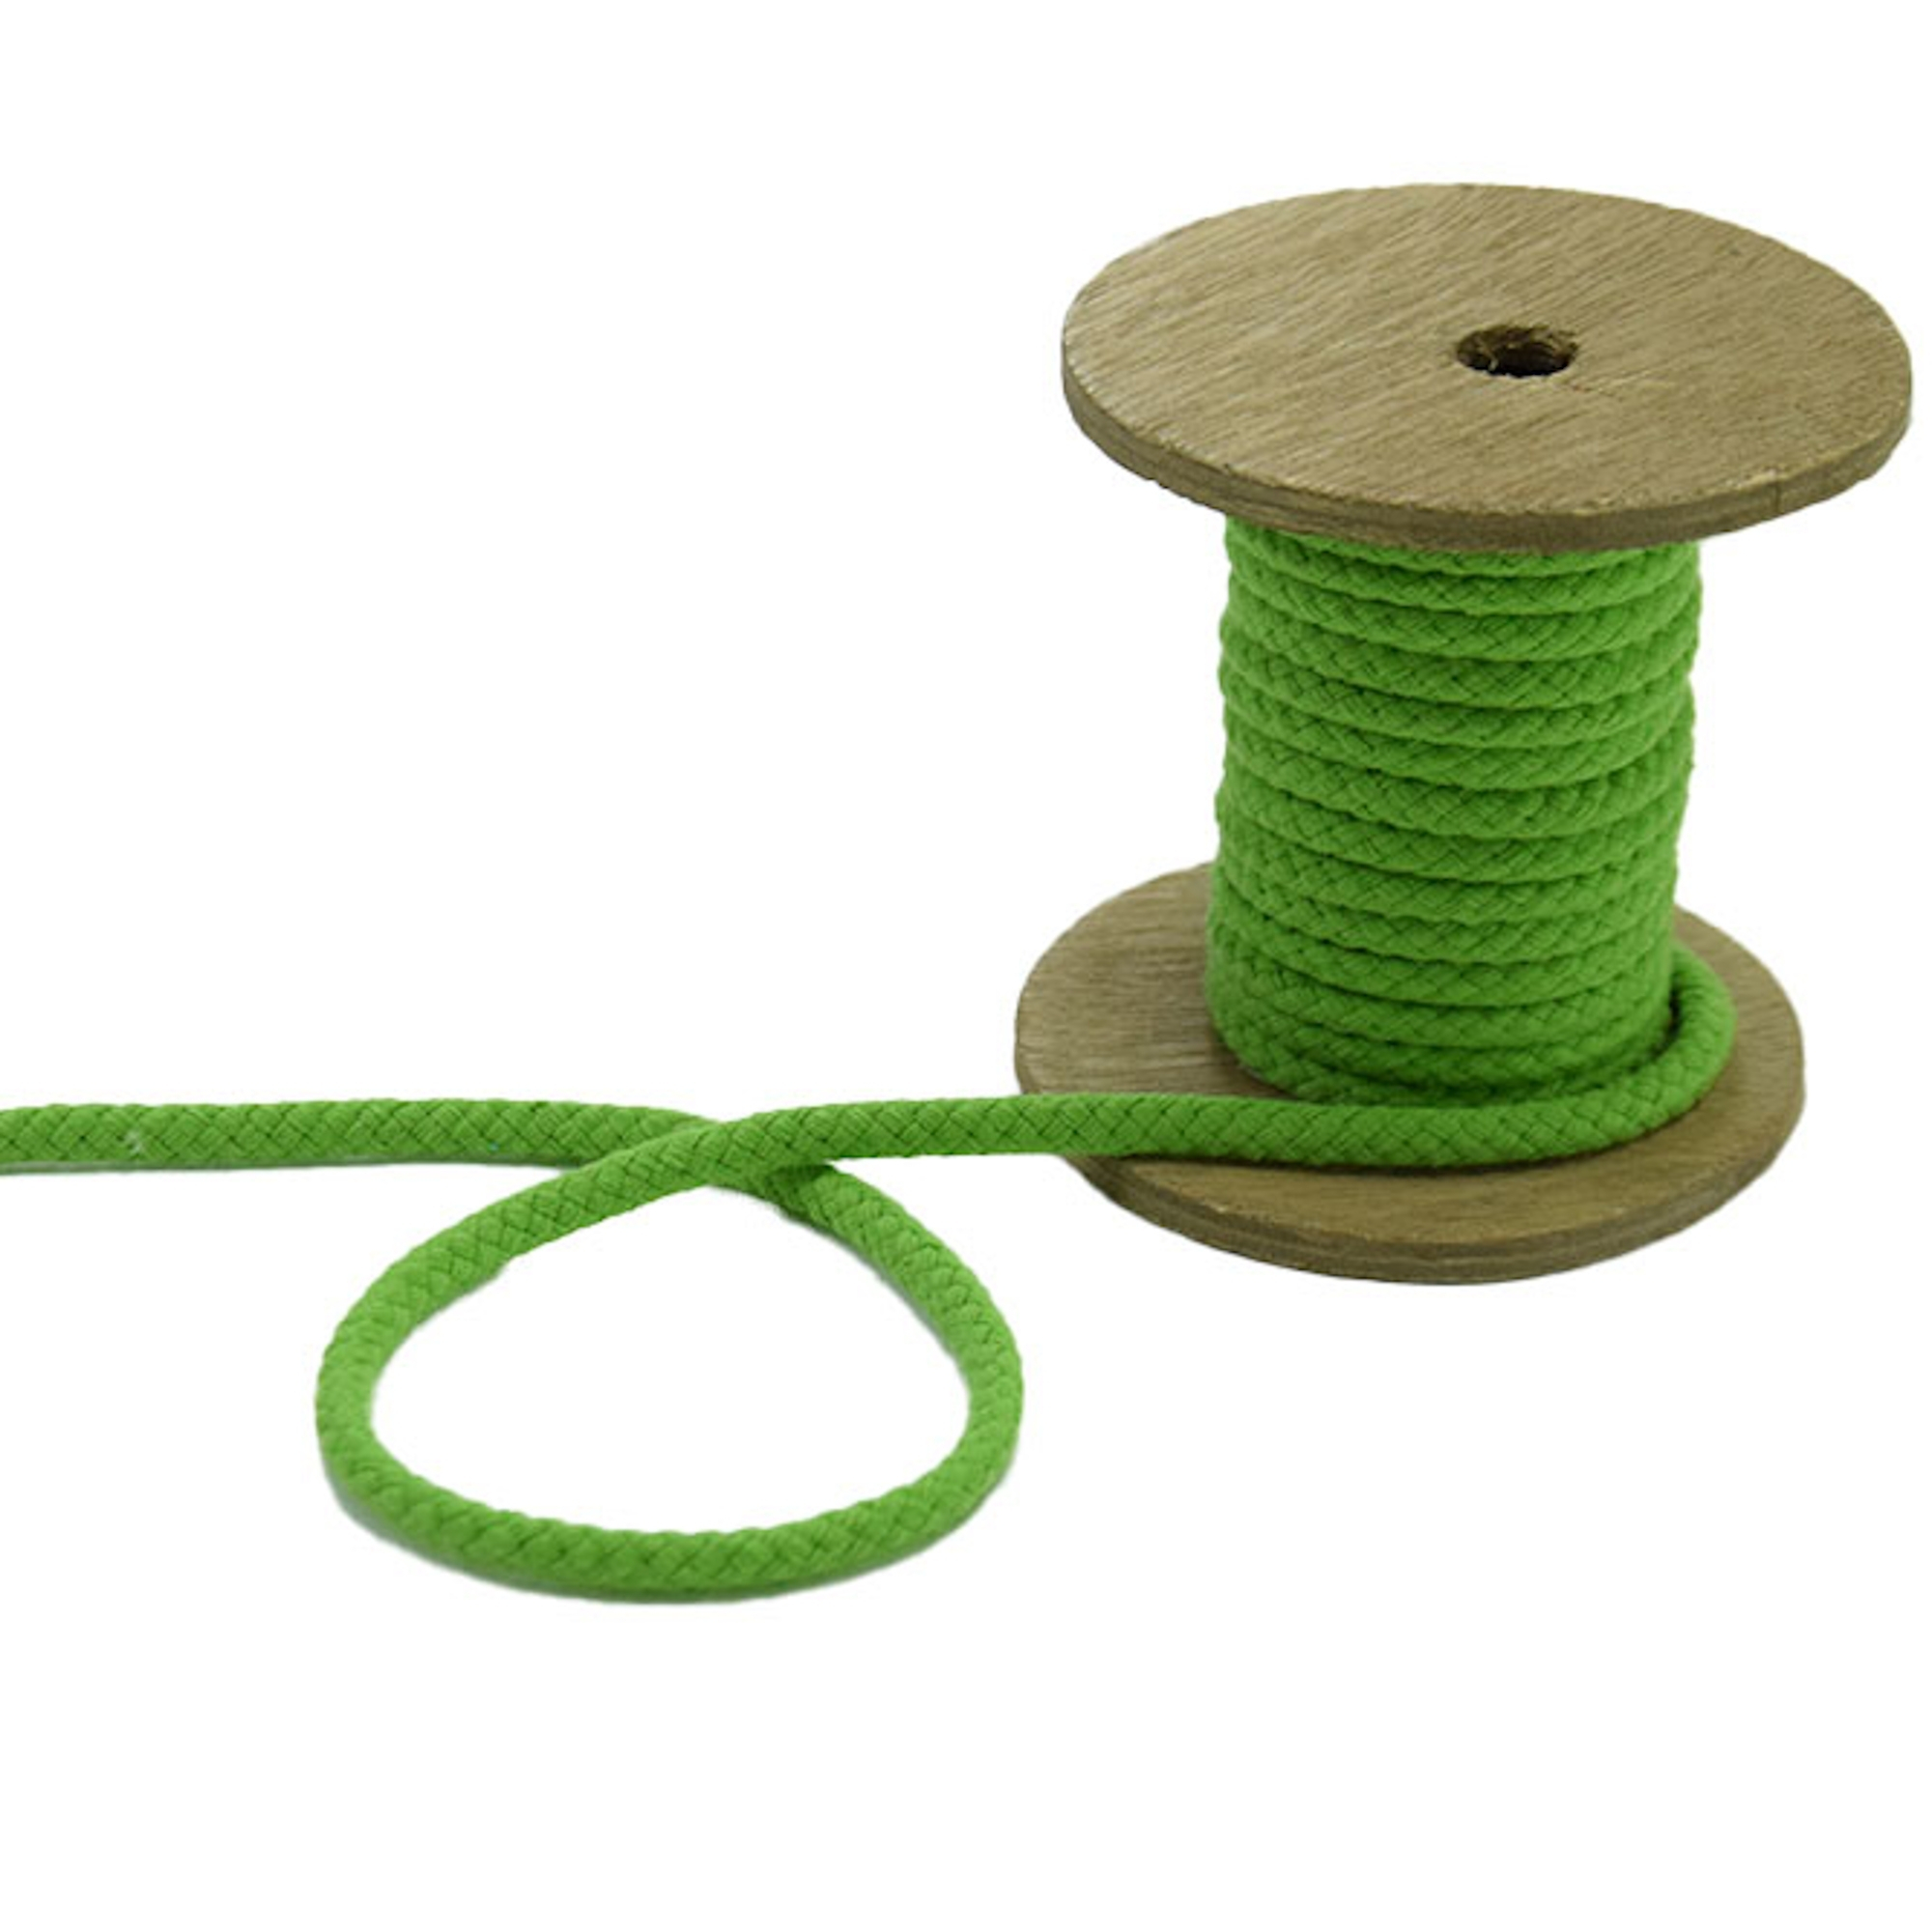 Corde pour veste 5 mm, medium green | 42274 | grün